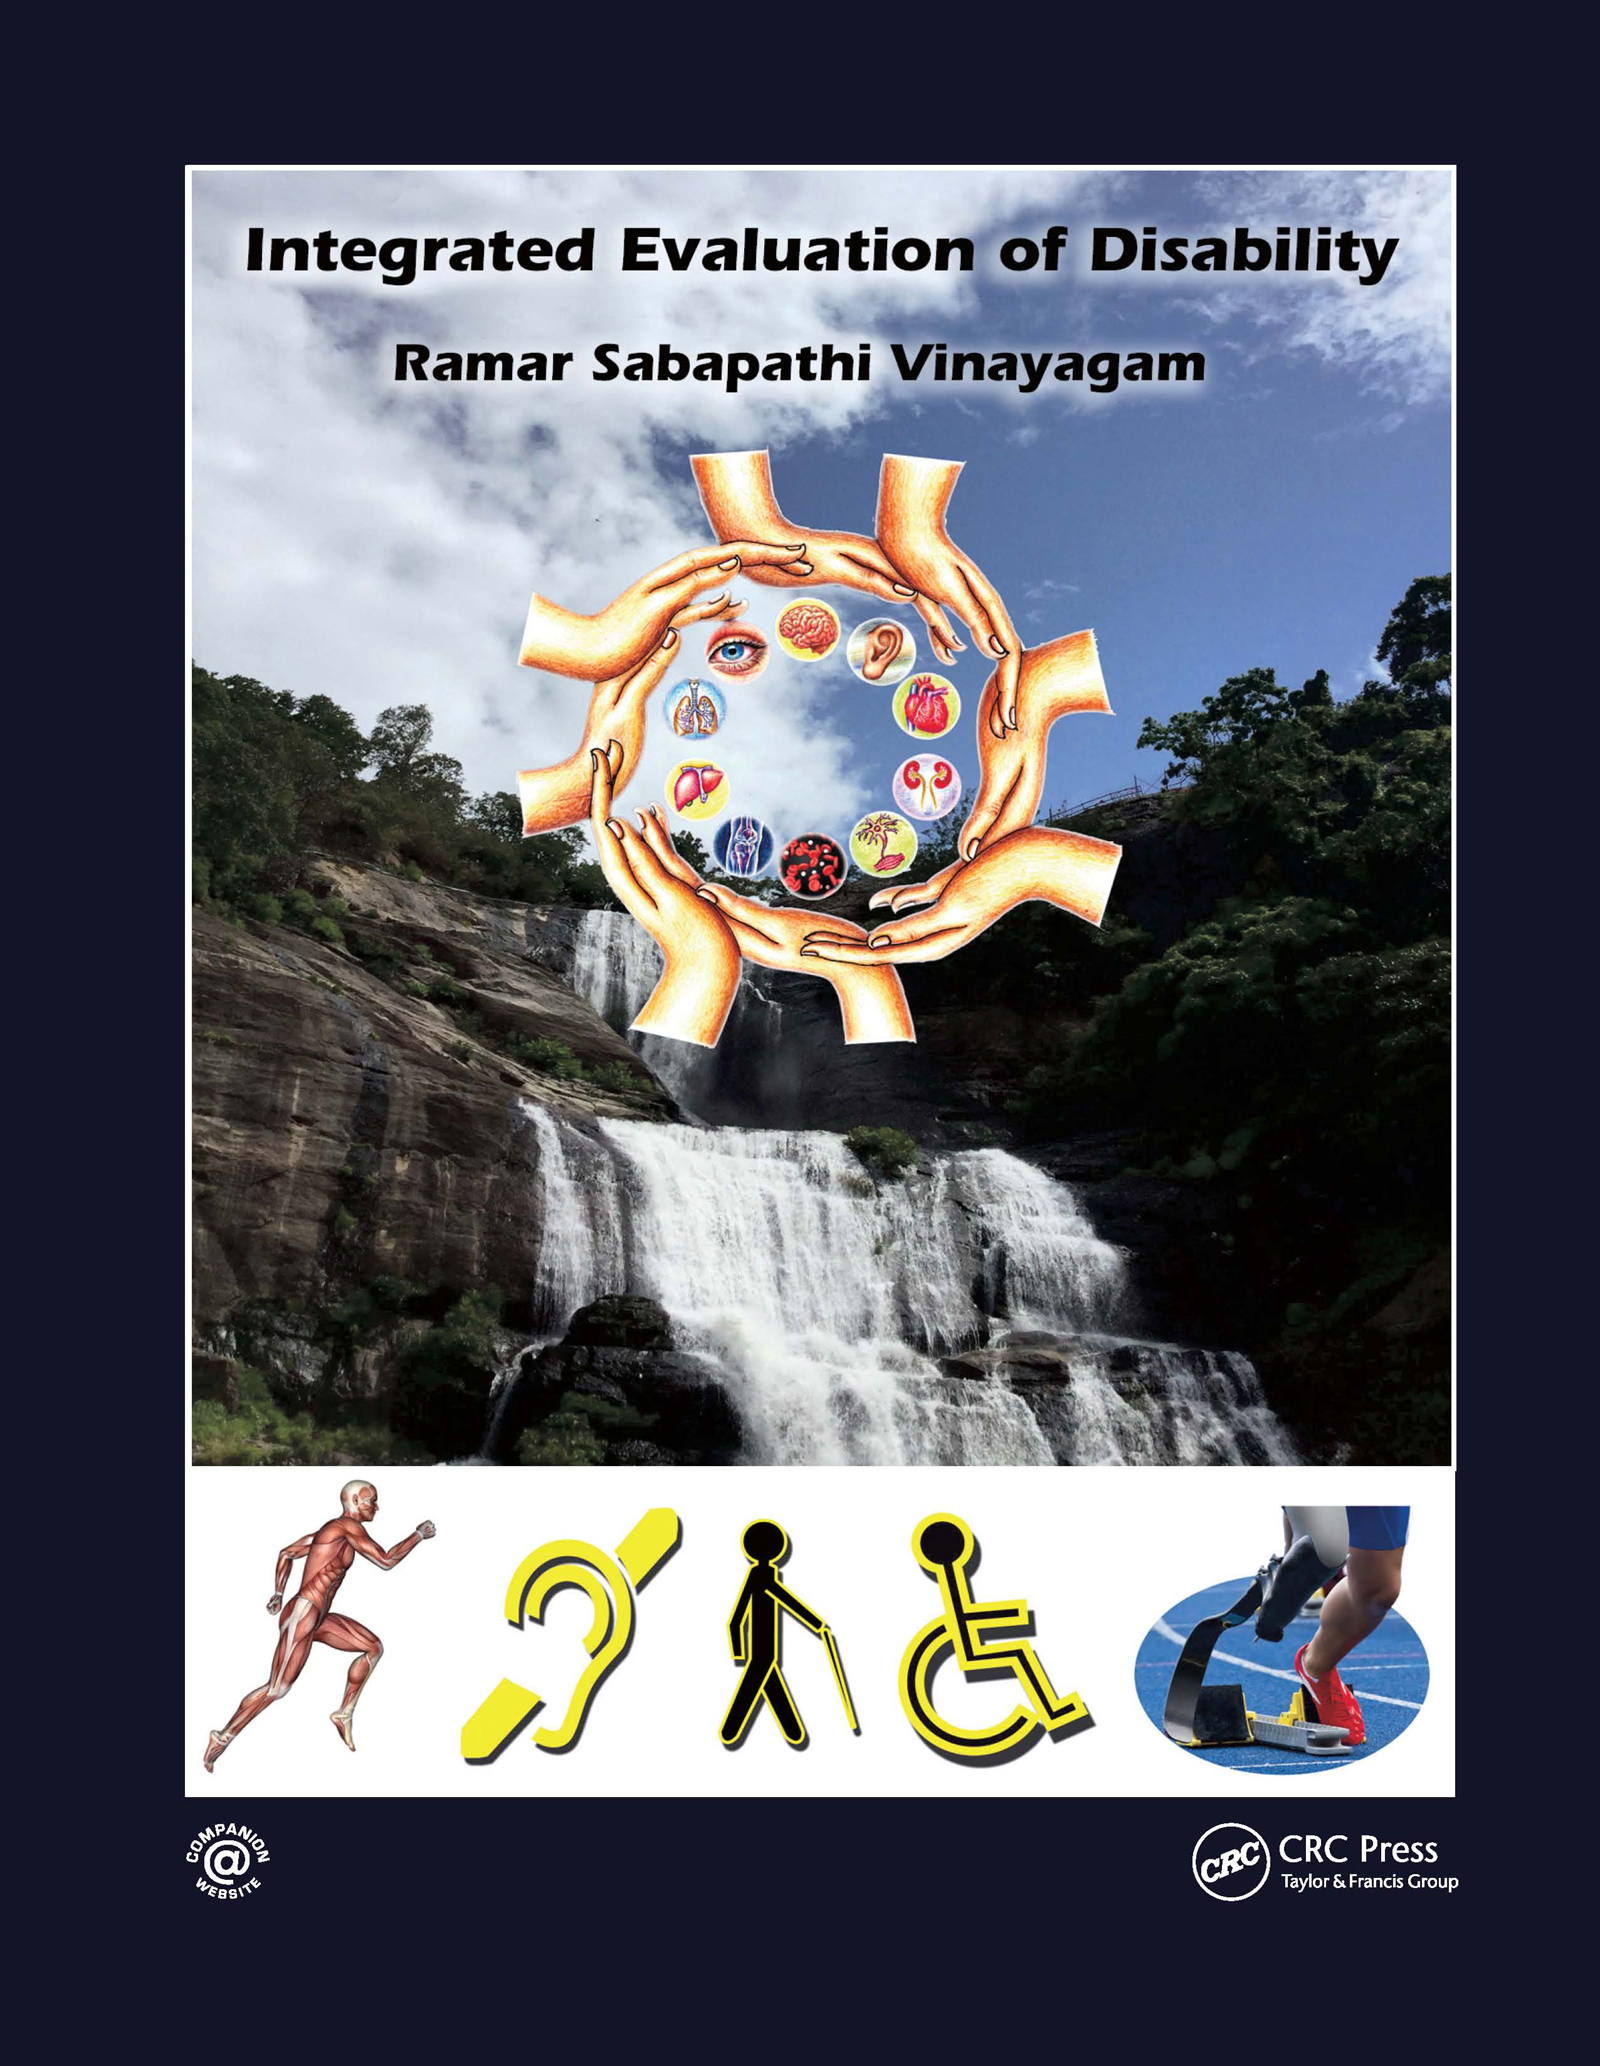 Integrated Evaluation of Disability